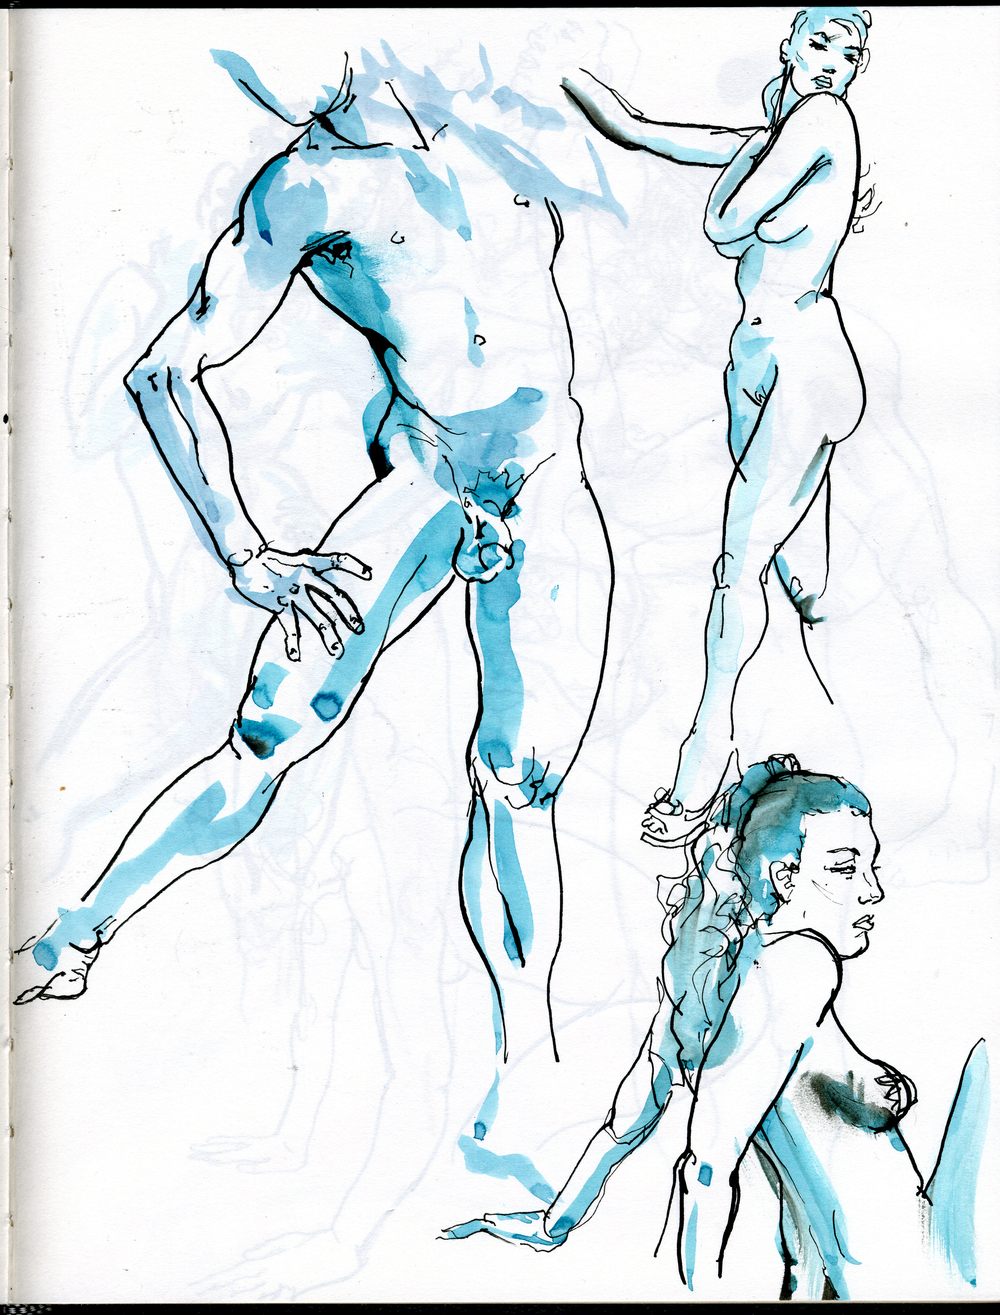 Sketchbook_Apr08_076.jpg